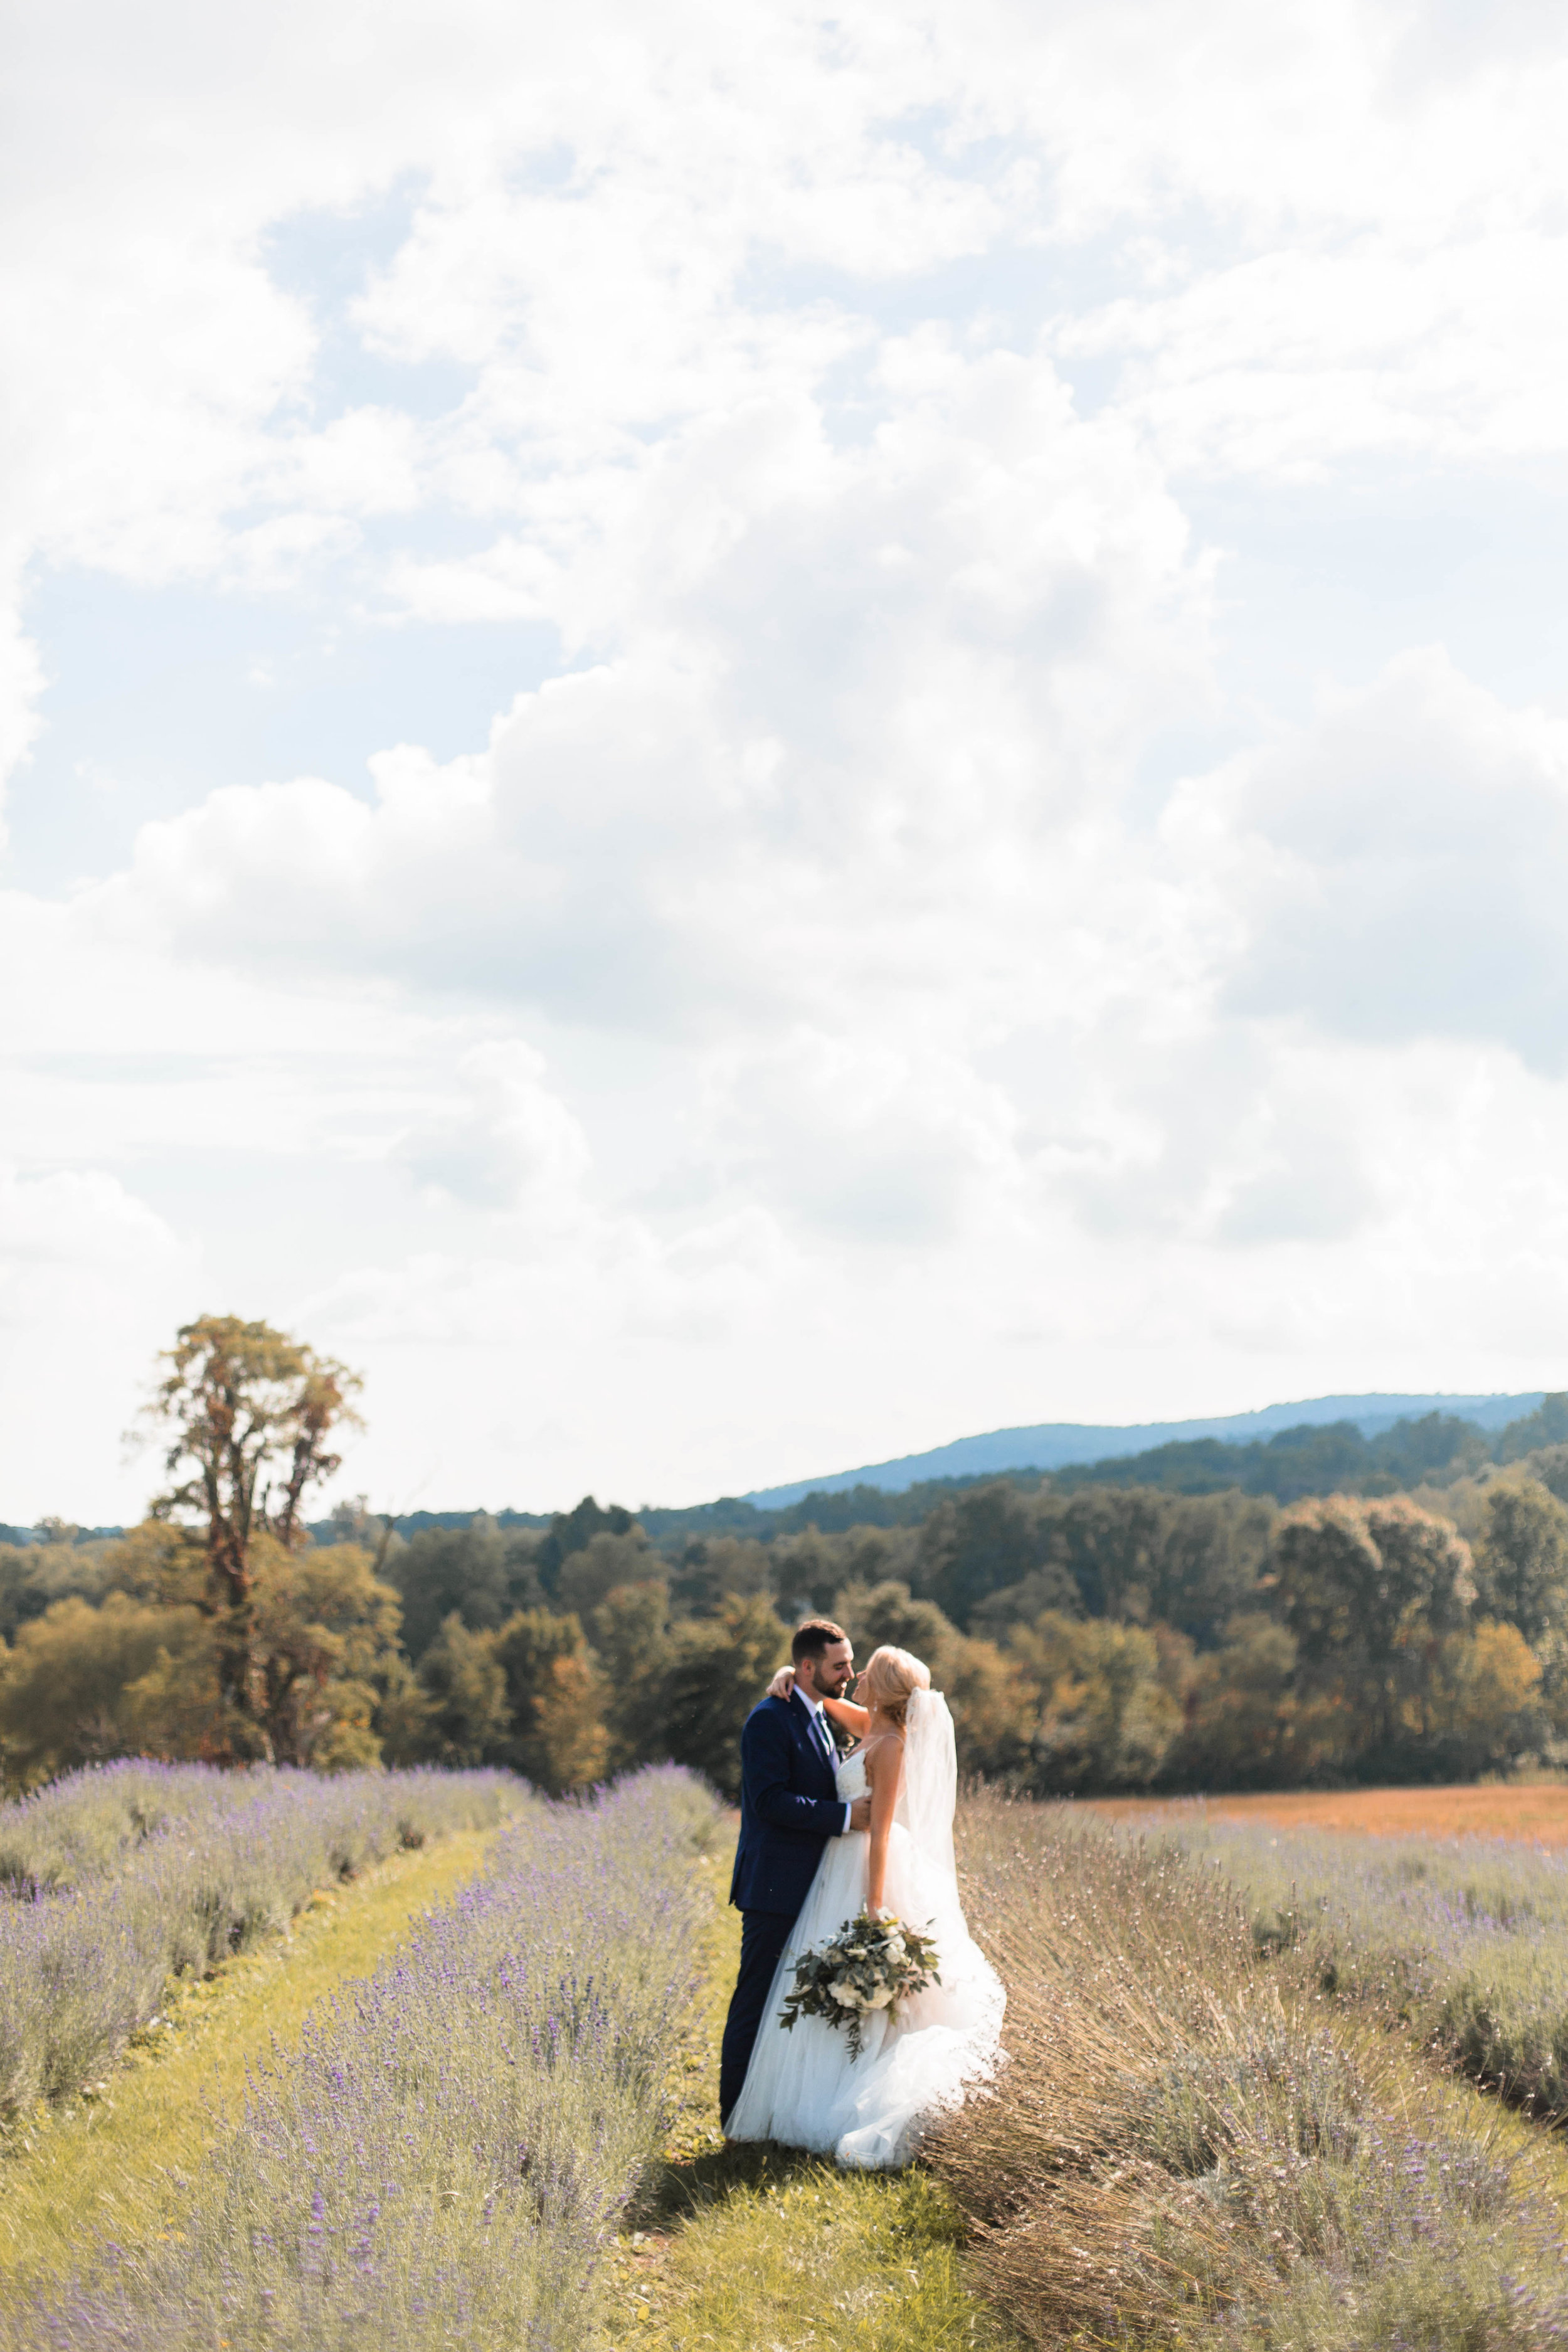 nicole-daacke-photography-intimate-wedding-in-a-lavender-field-washington-state-wedding-photographer-intimate-elopement-golden-lavender-field-wedding-photos-24.jpg